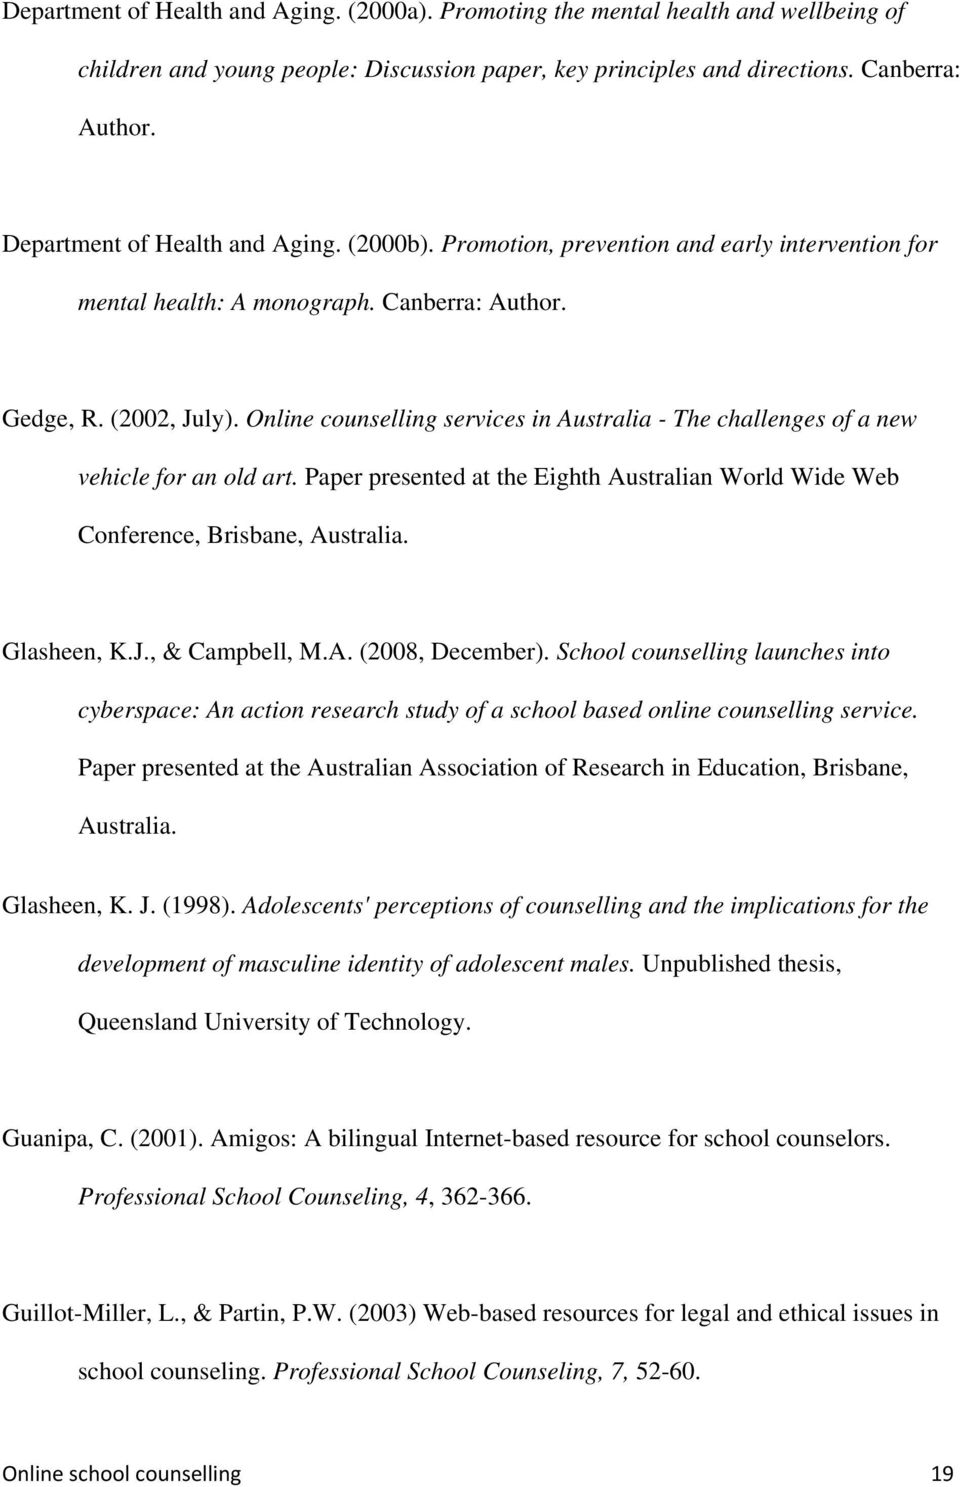 Online counselling services in Australia - The challenges of a new vehicle for an old art. Paper presented at the Eighth Australian World Wide Web Conference, Brisbane, Australia. Glasheen, K.J.